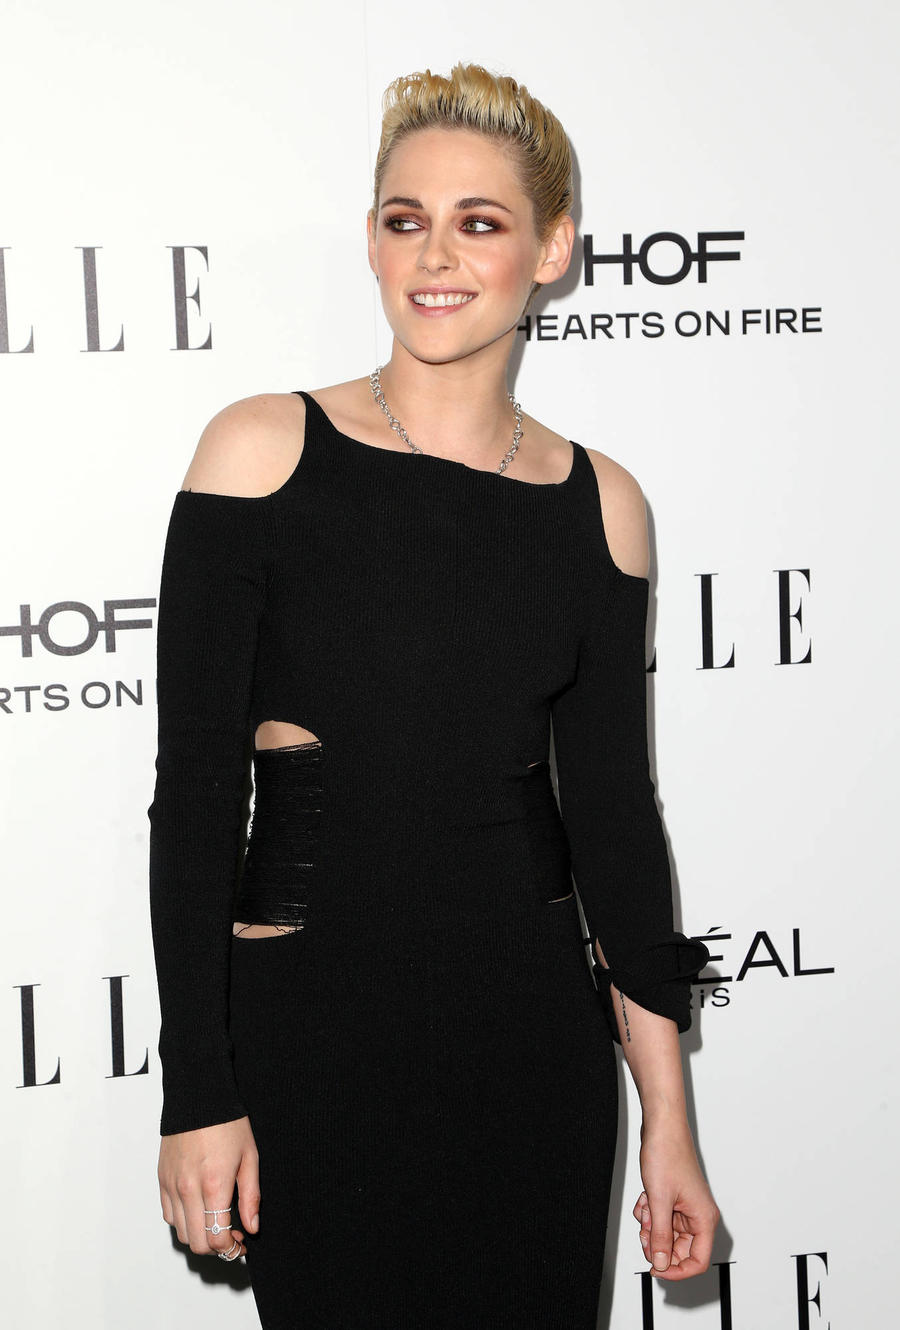 Kristen Stewart Turned Down Snl For Six Years Because She Was Afraid